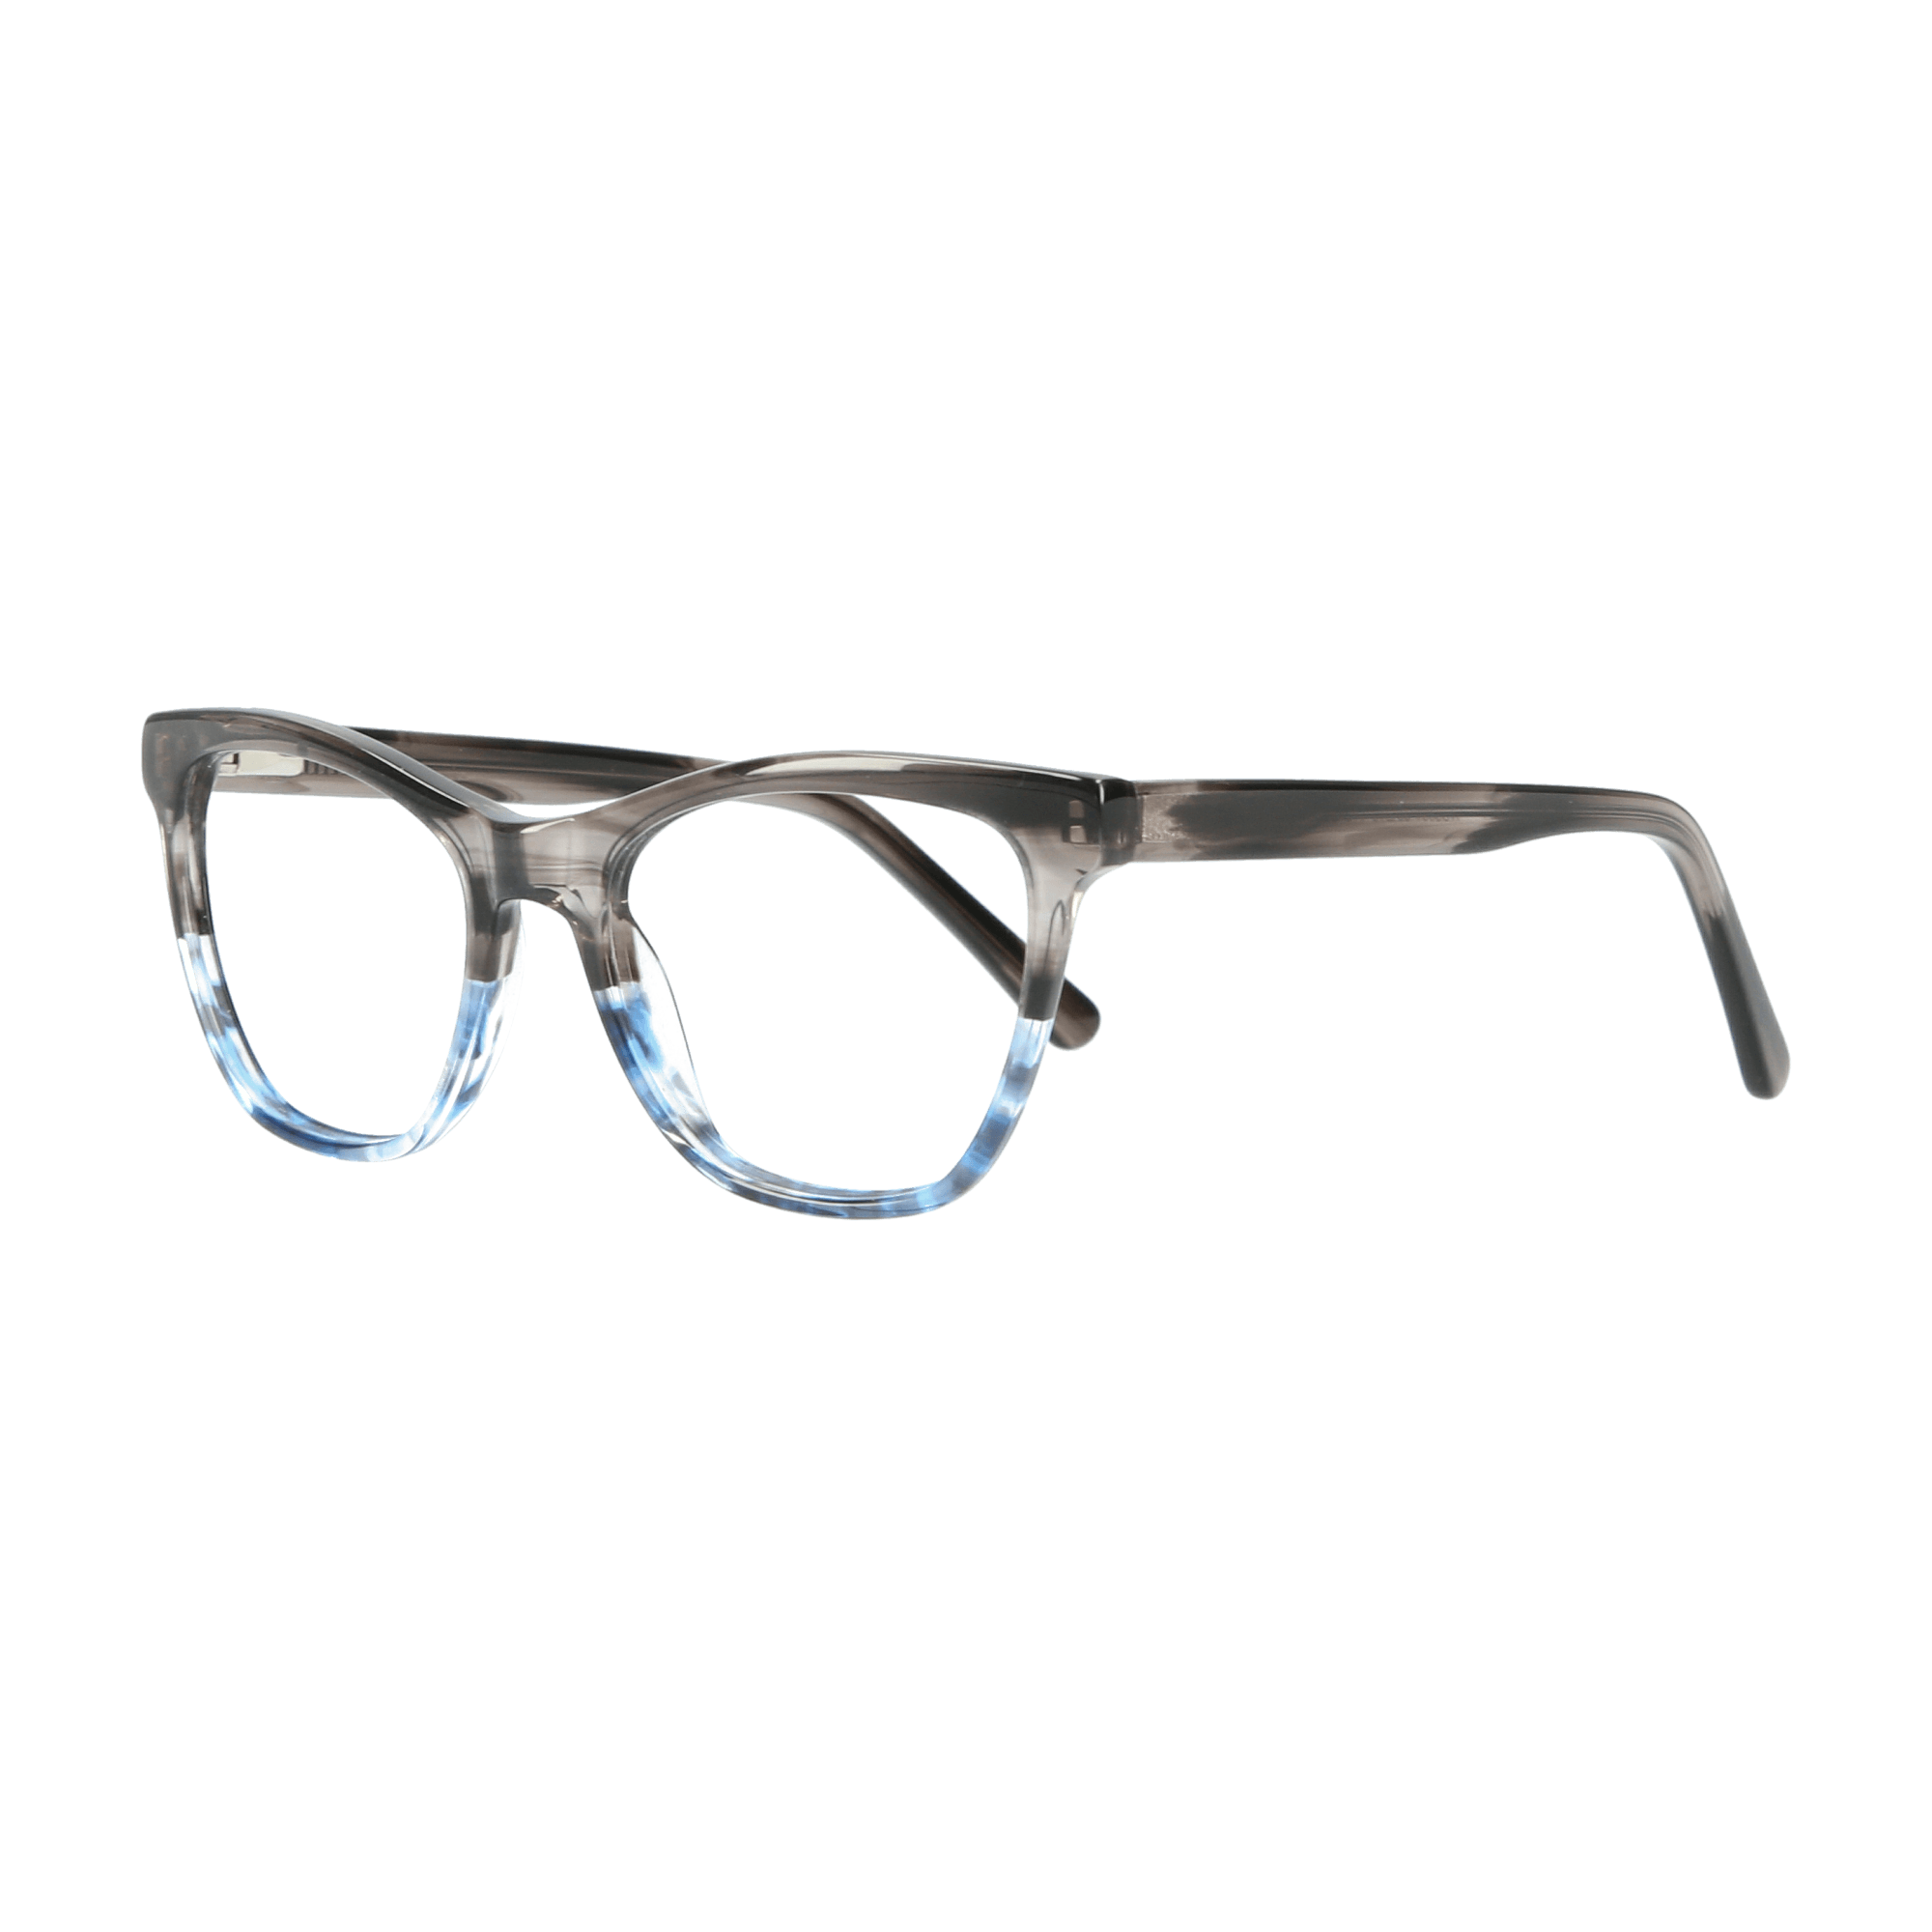 D'ARBLAY OPTICAL SAINT REETS